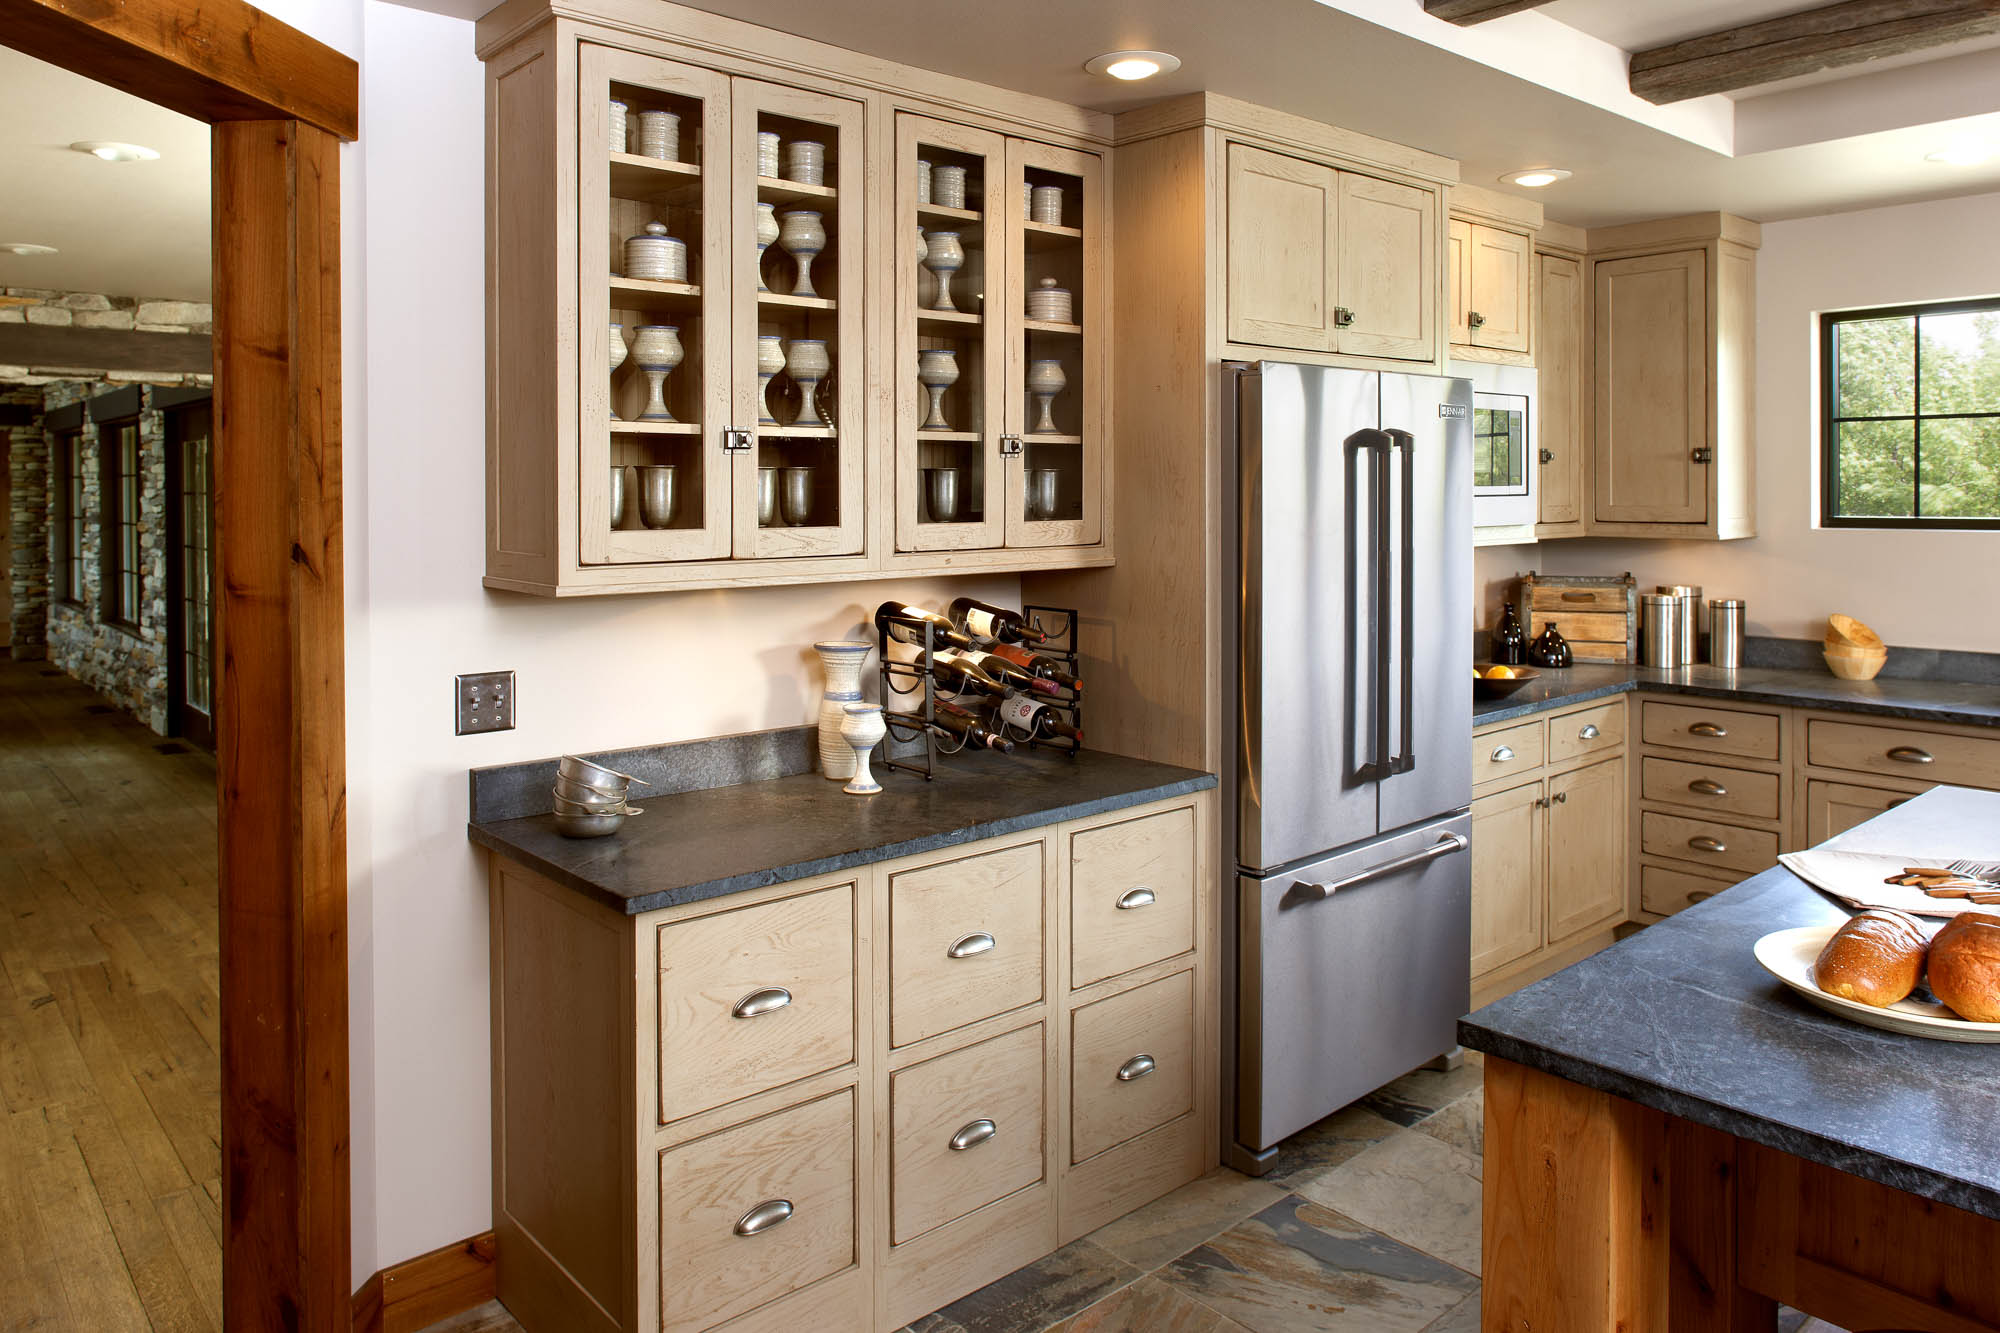 Painted kitchen cabinets in Sandstone by Showplace Cabinetry - view 2